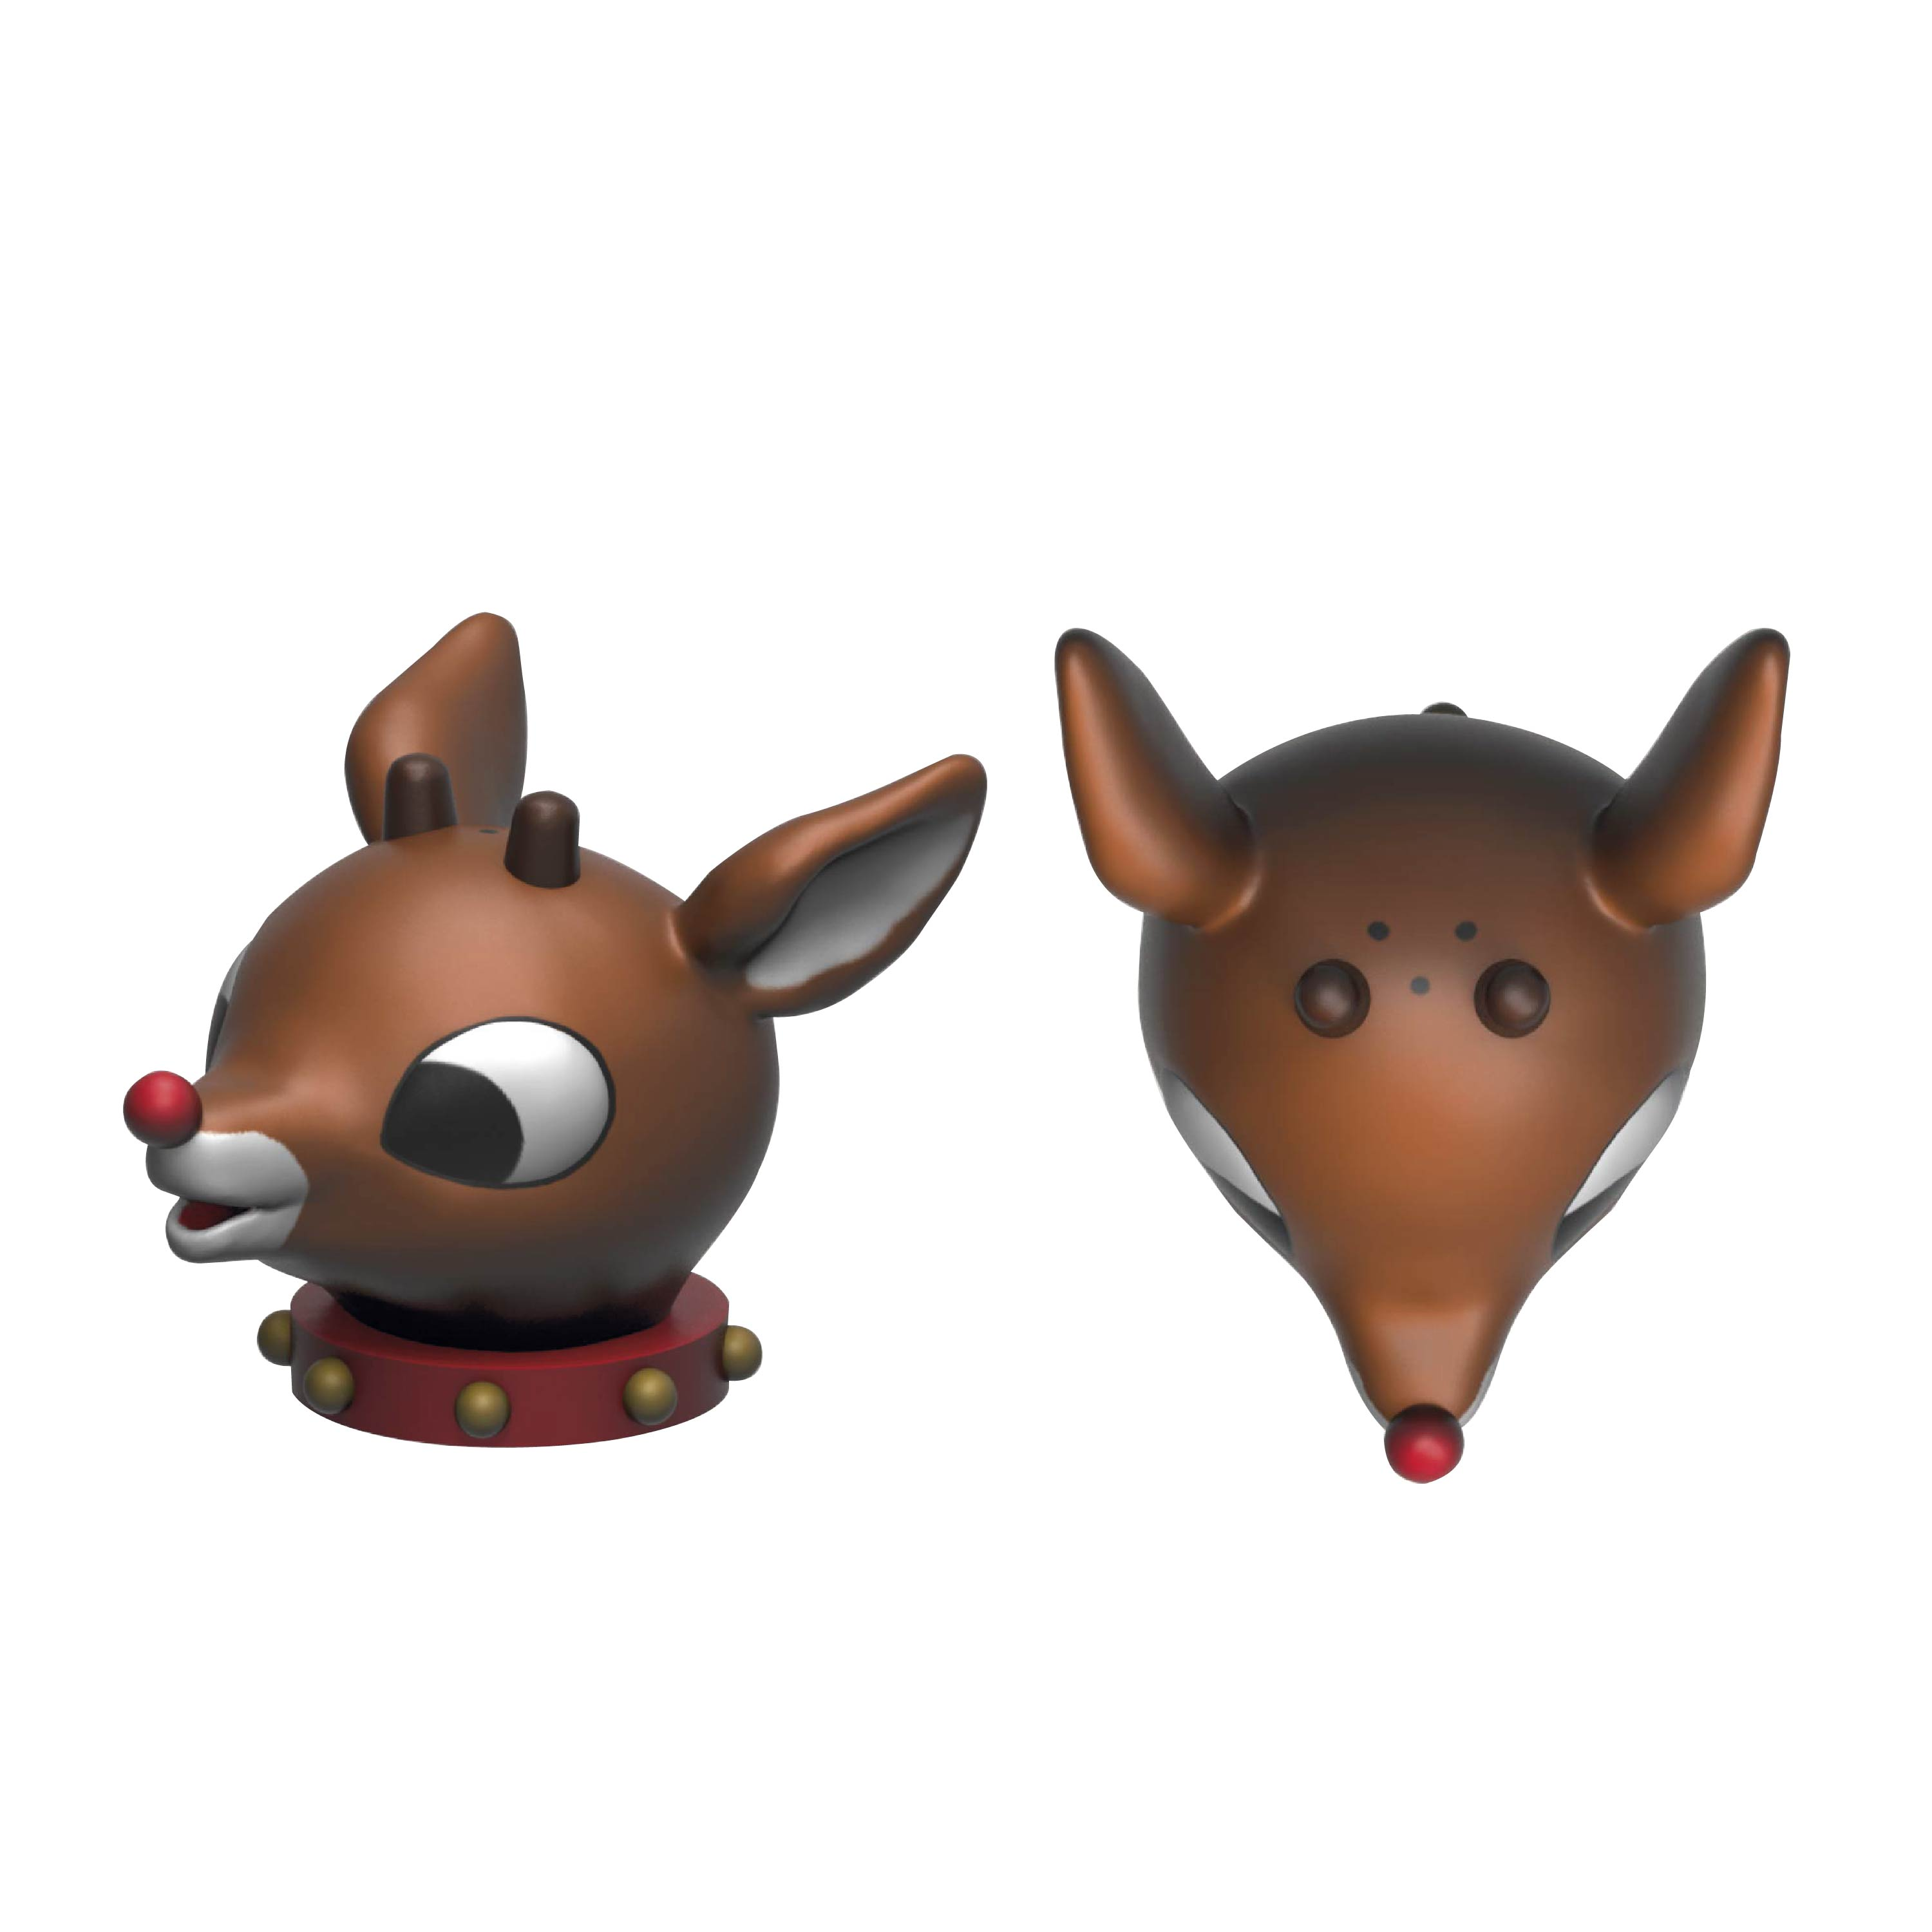 Rudolph the Red-Nosed Reindeer Salt and Pepper Shaker Set, Rudolph & Clarice, 2-piece set slideshow image 7